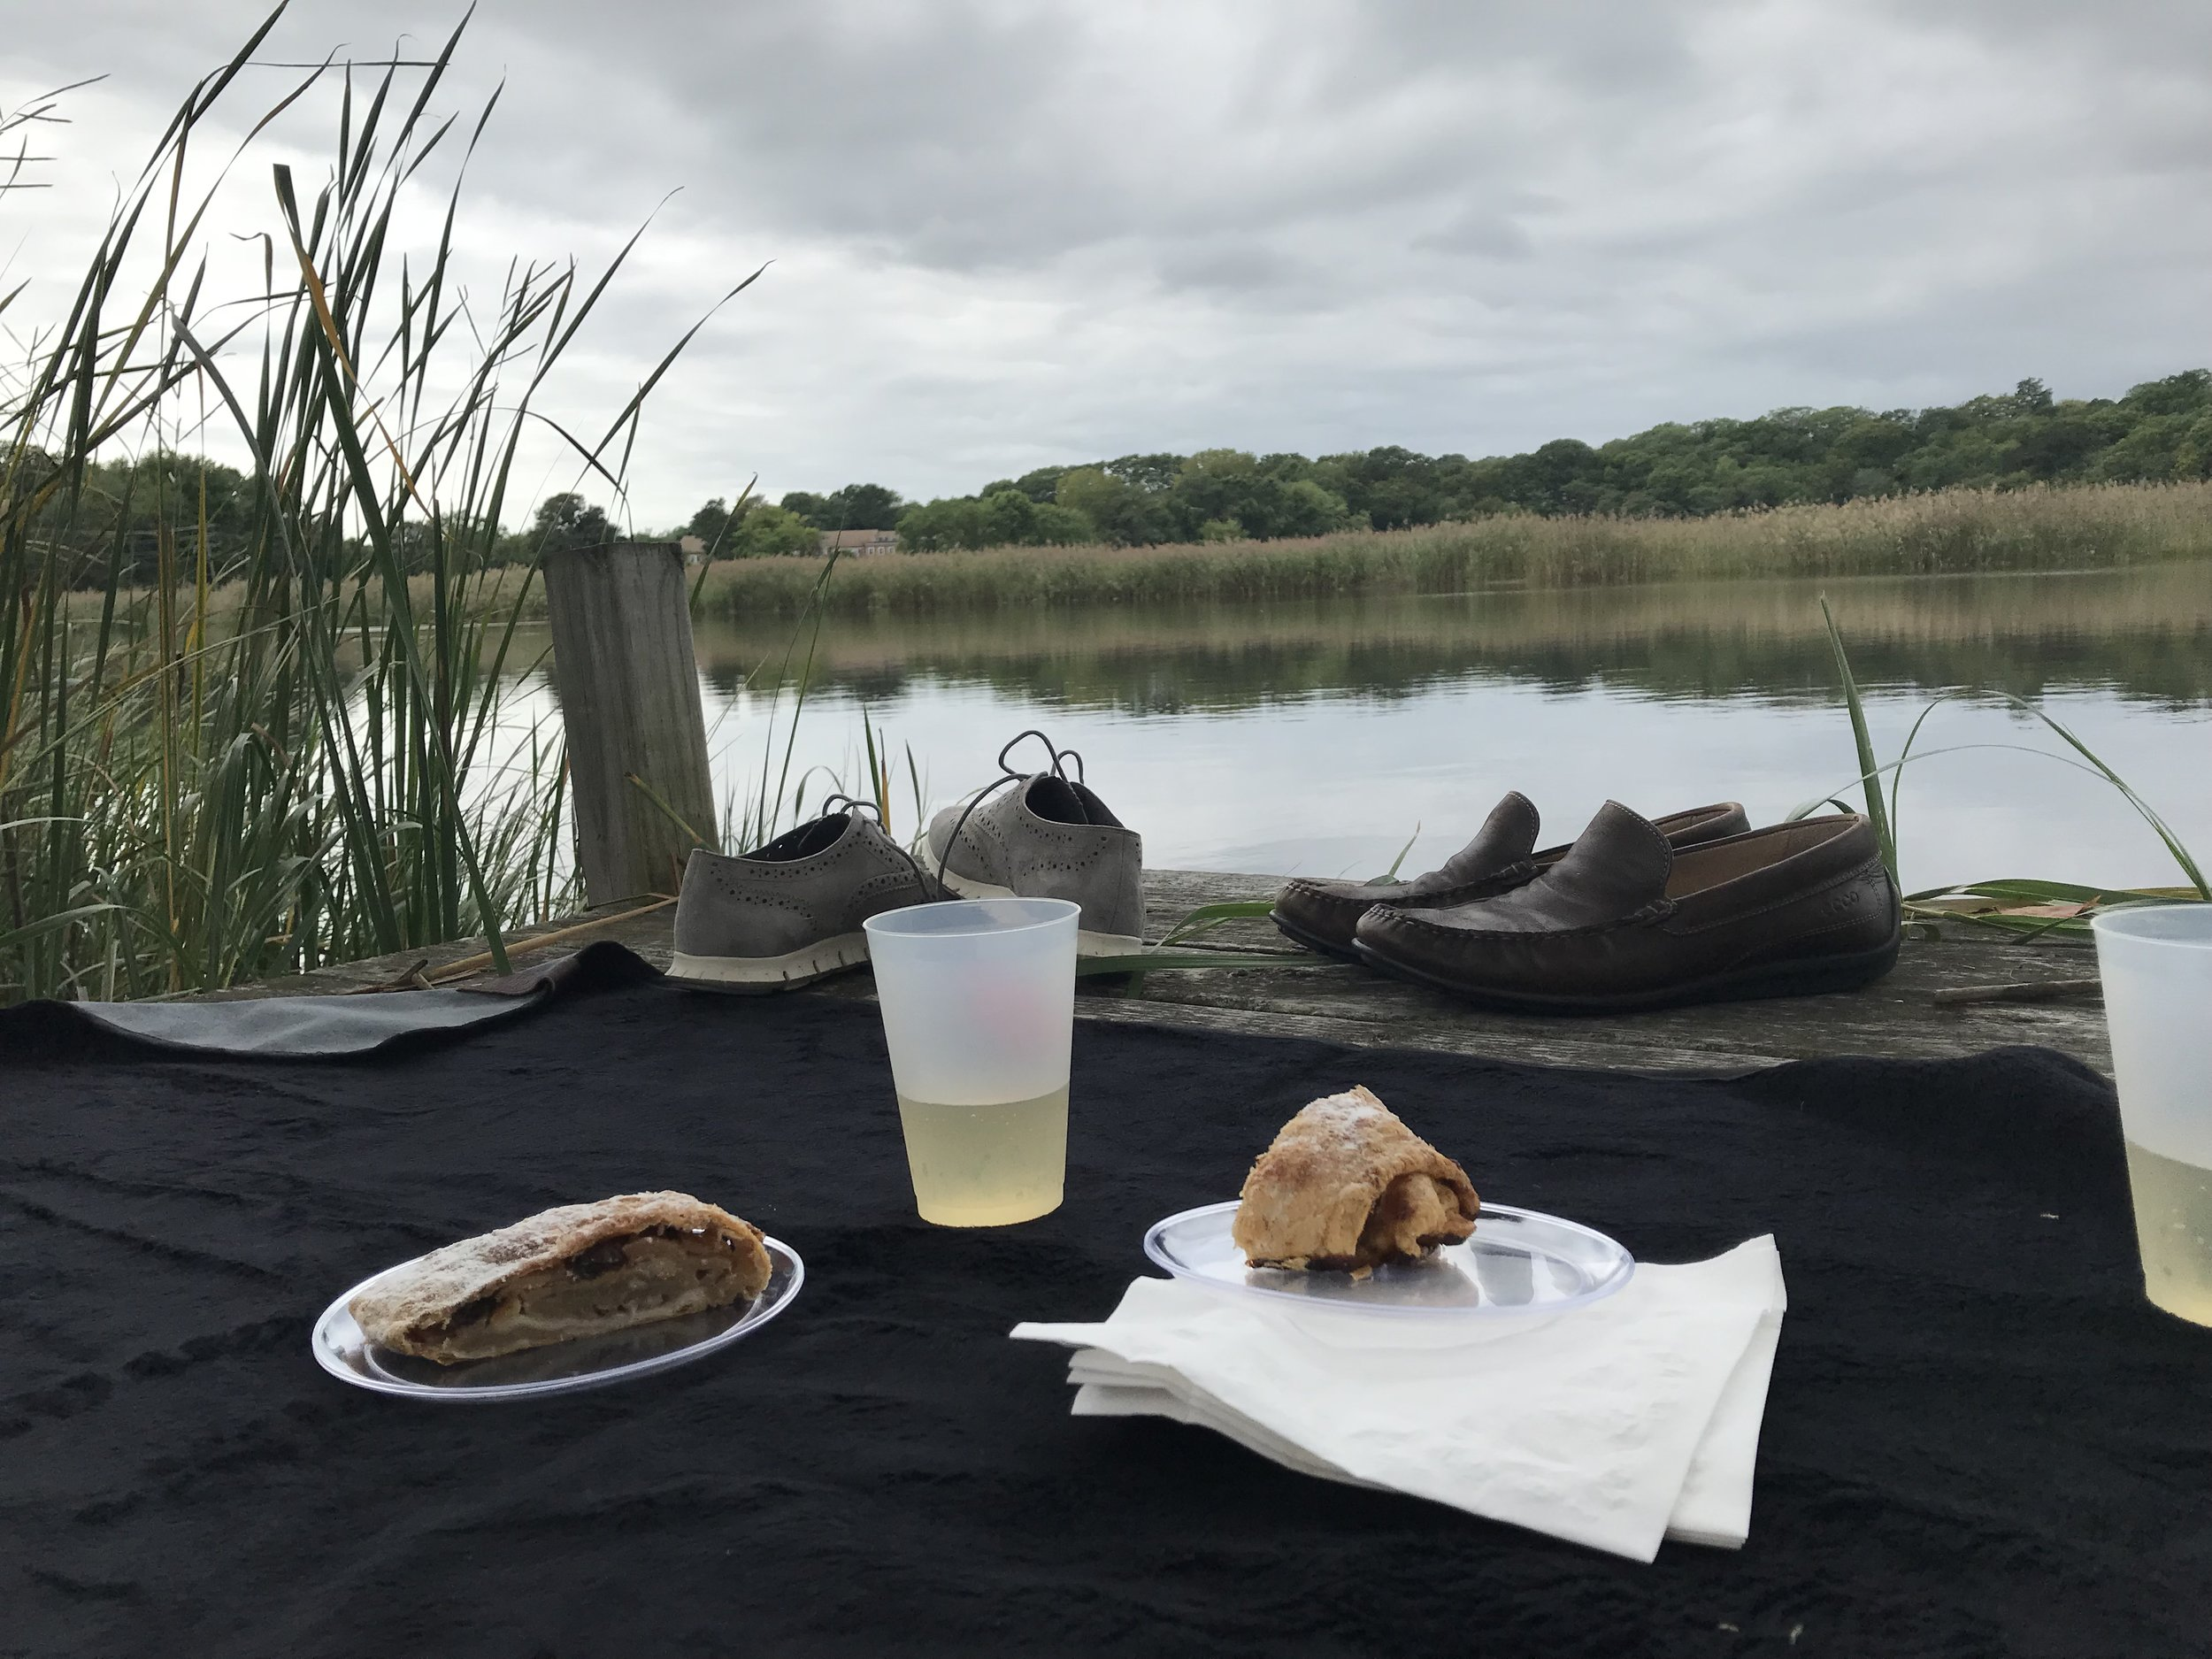 """On Friday, my actual birthday, I was treated to a surprise picnic with my husband. Idyllic location, and the absence of life stressors felt simply divine. After days of thick, oppressive humidity, this image of my vista stayed with me. - """"Strudel Picnic on the banks of the Lieutenent"""" by Christopher Wright"""